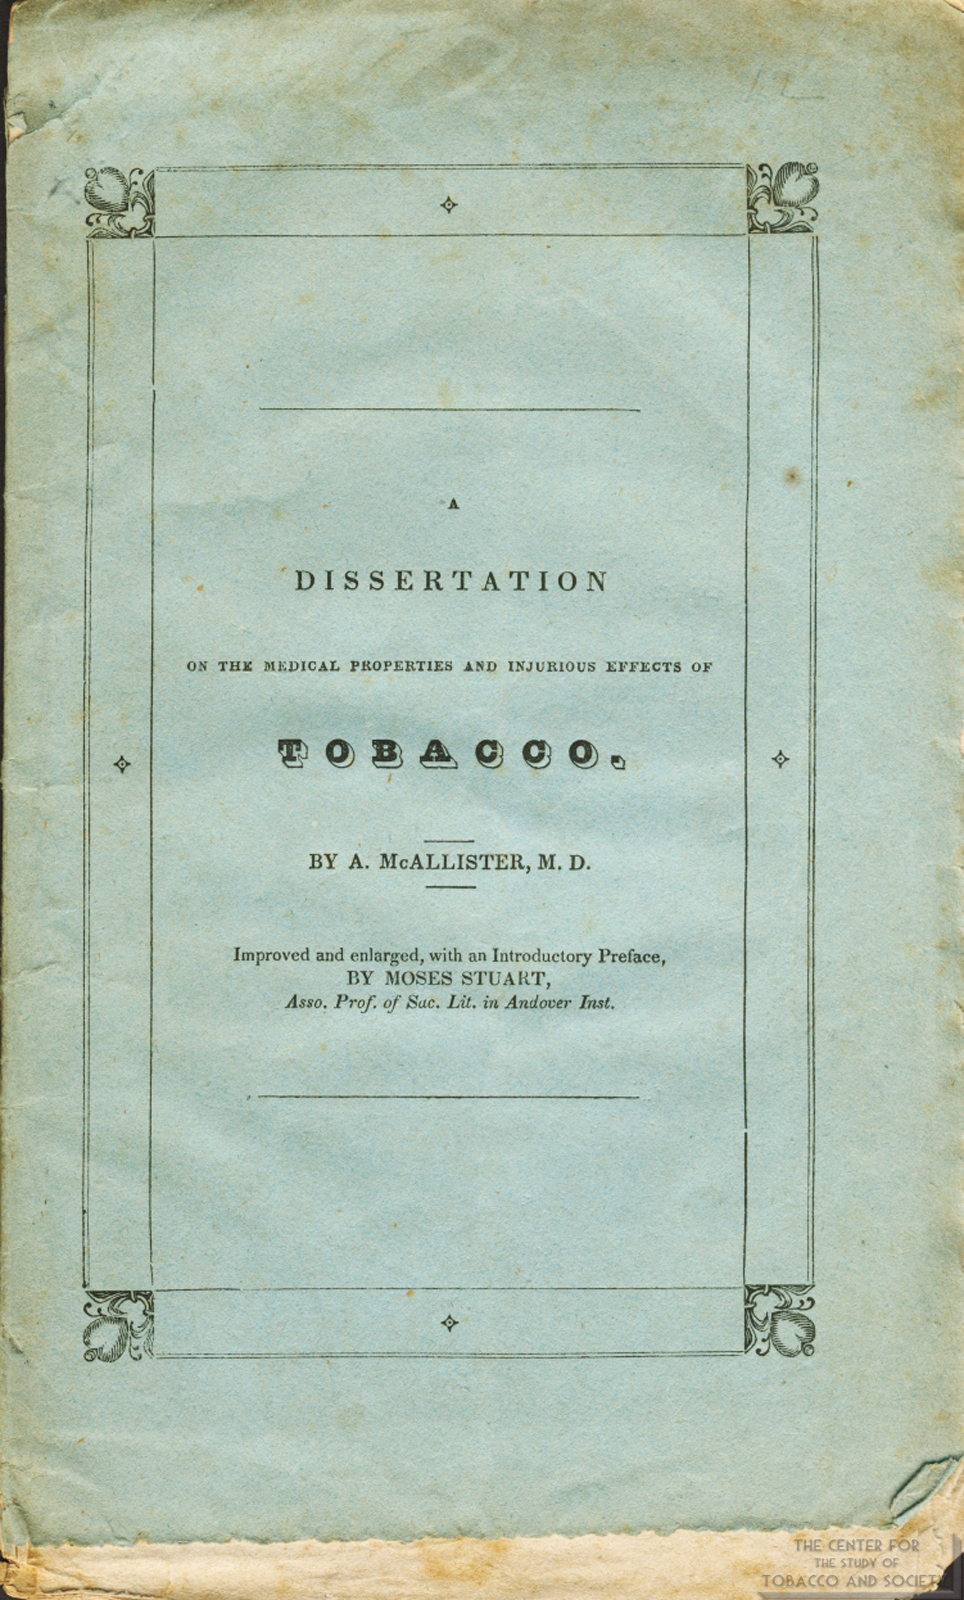 1832 Dissertation on Injurious Effects of Tobacco Front Cover